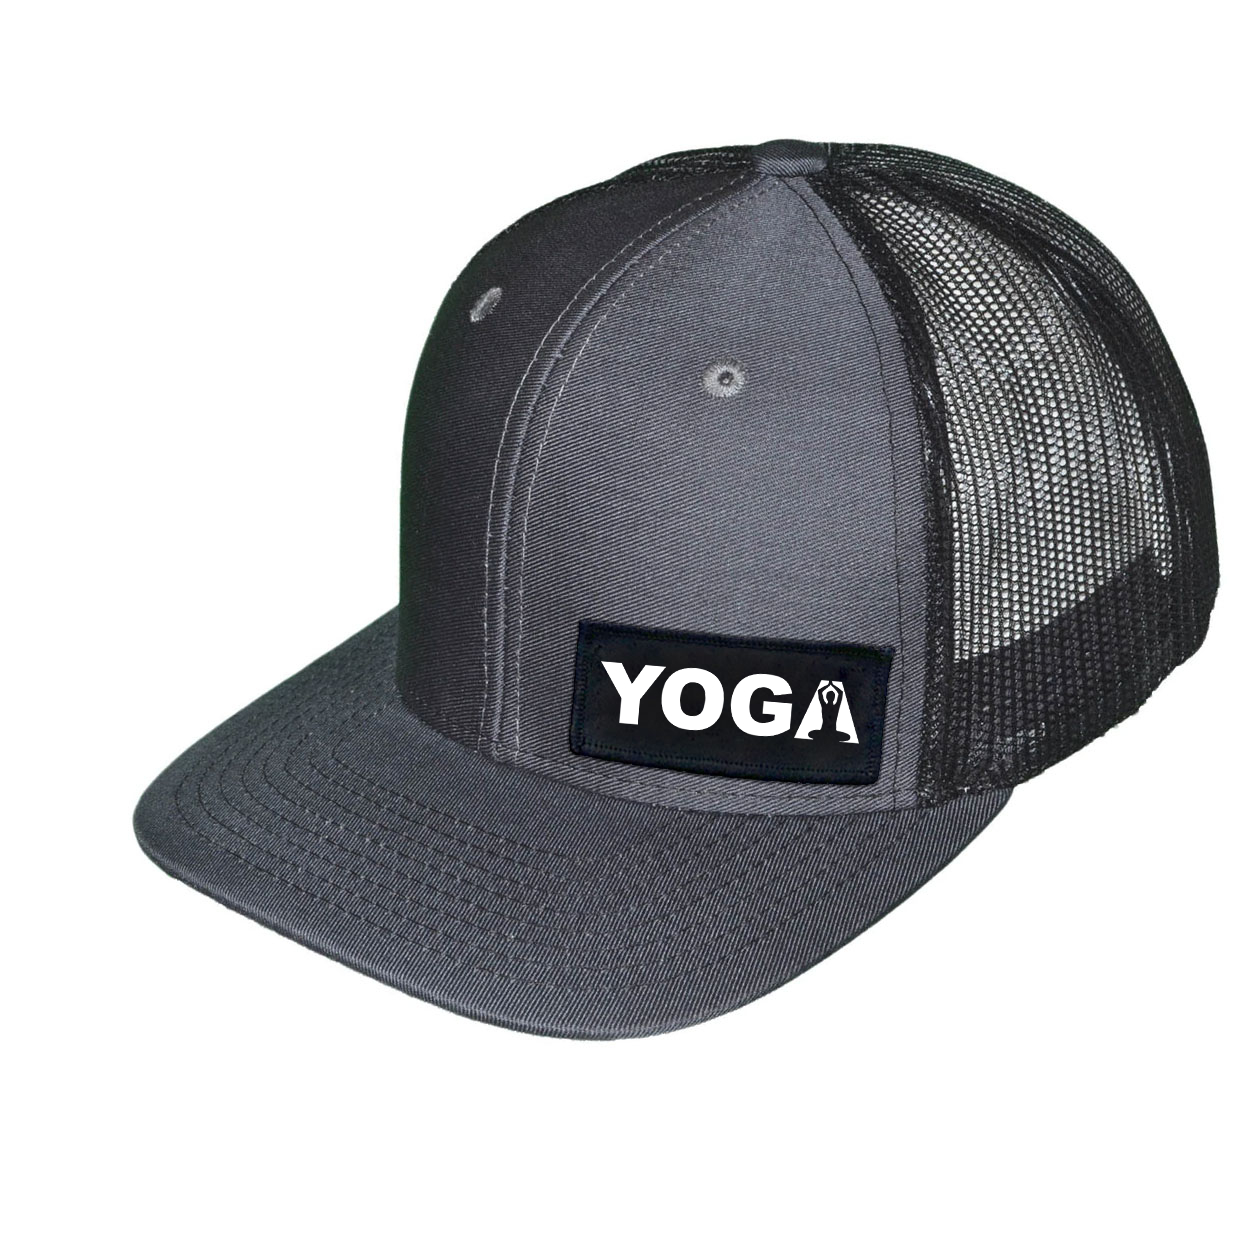 Yoga Meditation Logo Night Out Woven Patch Snapback Trucker Hat Dark Gray/Black (White Logo)